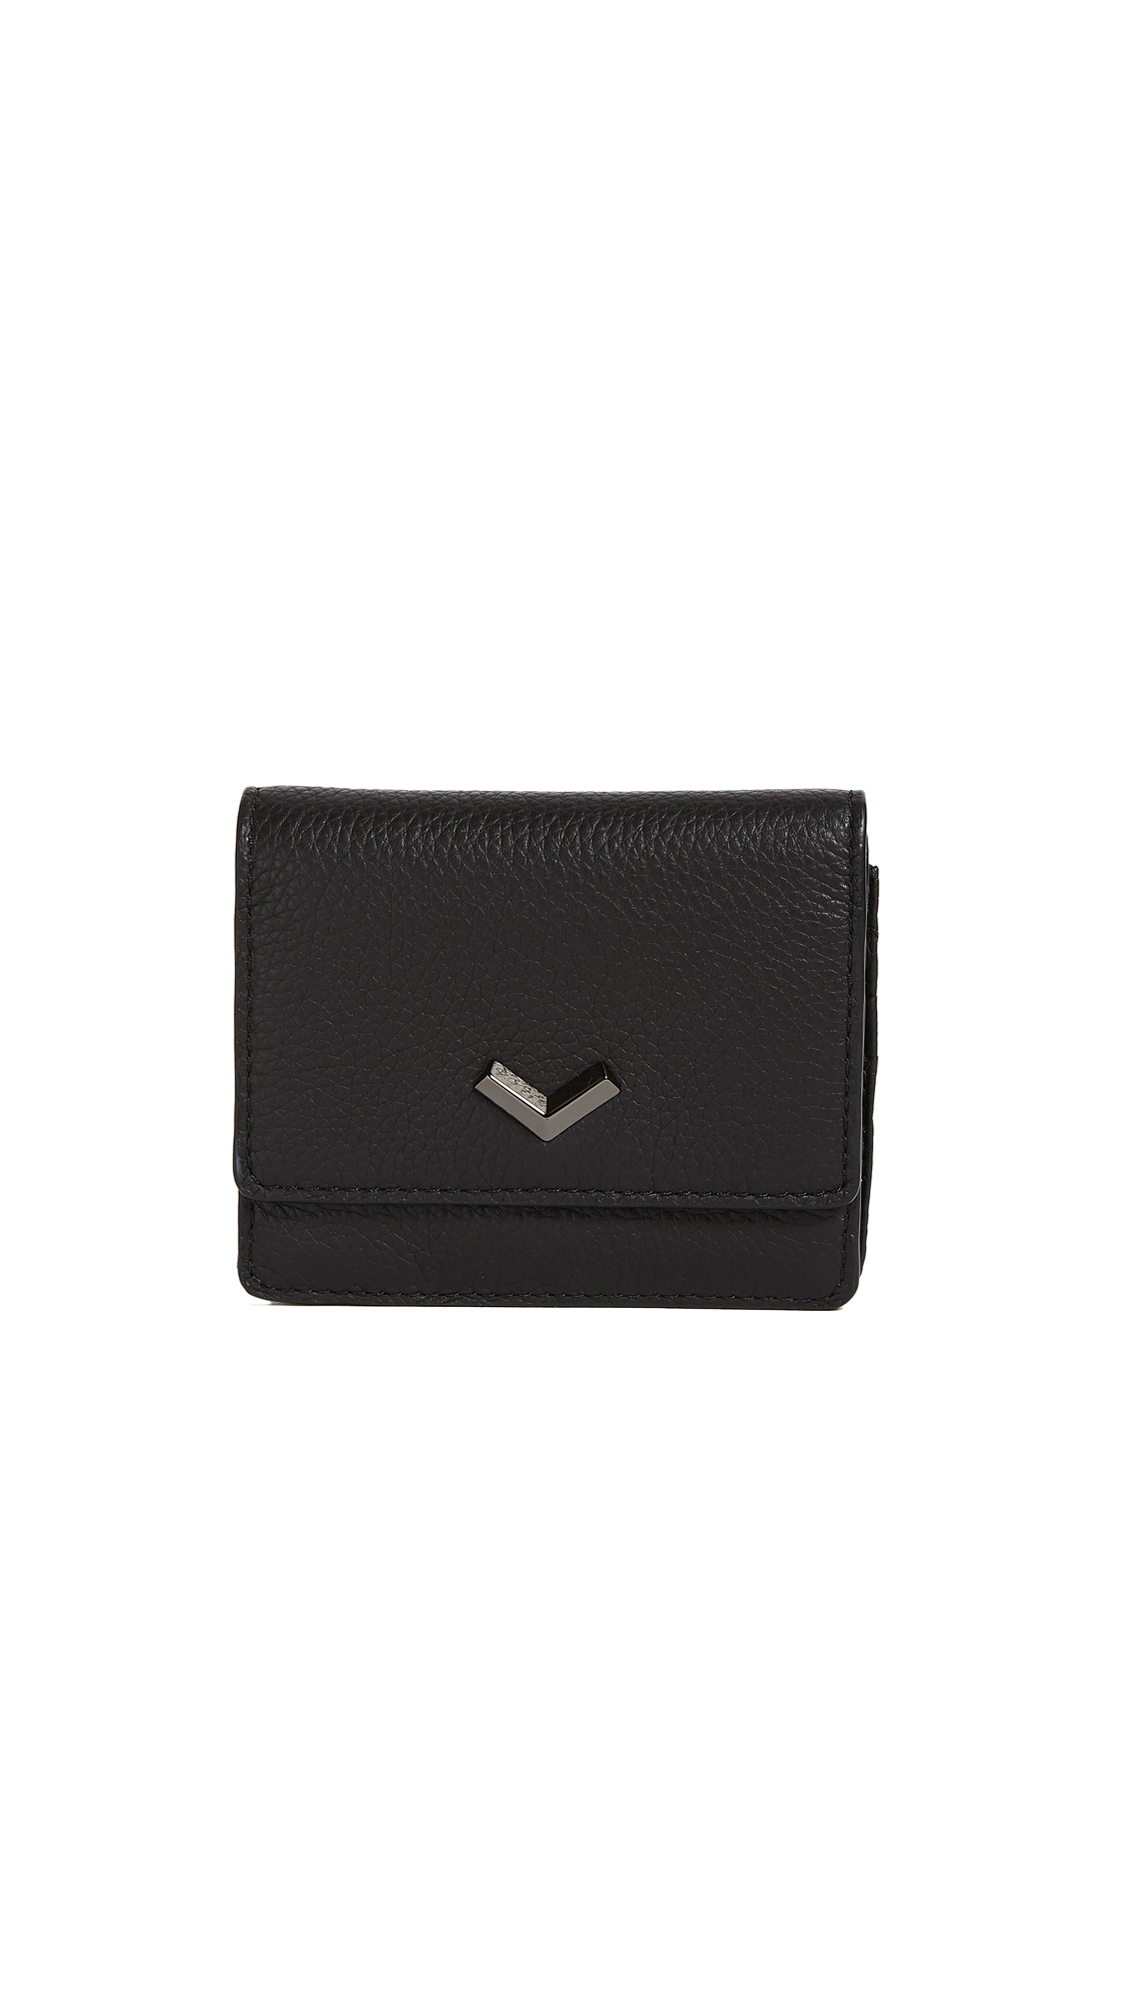 Botkier Soho Mini Wallet - Black